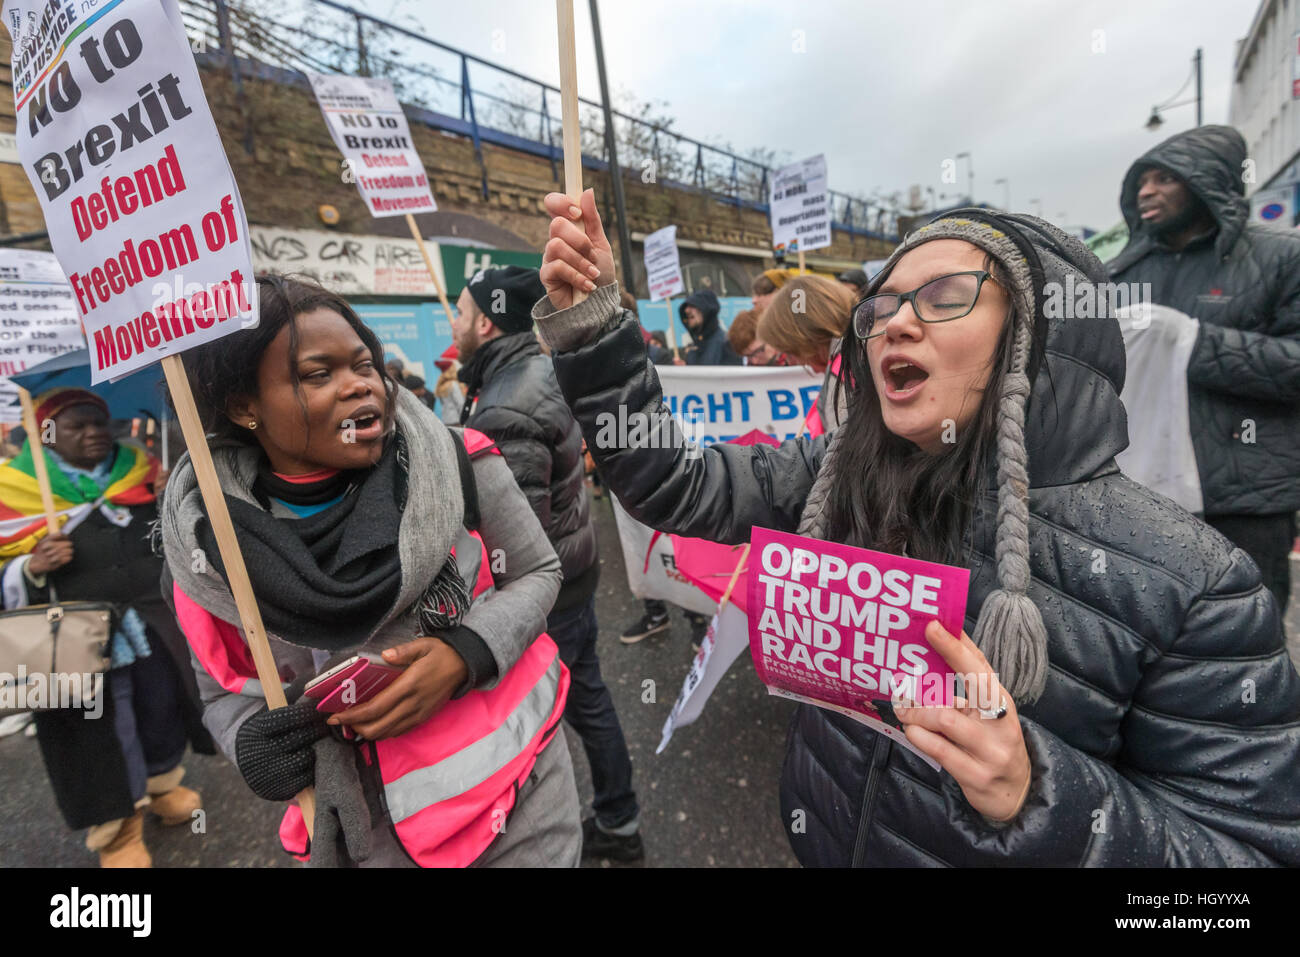 London, UK. 14th January 2017. Movement for Justice led a march through Brixton communities building the fight against - Stock Image